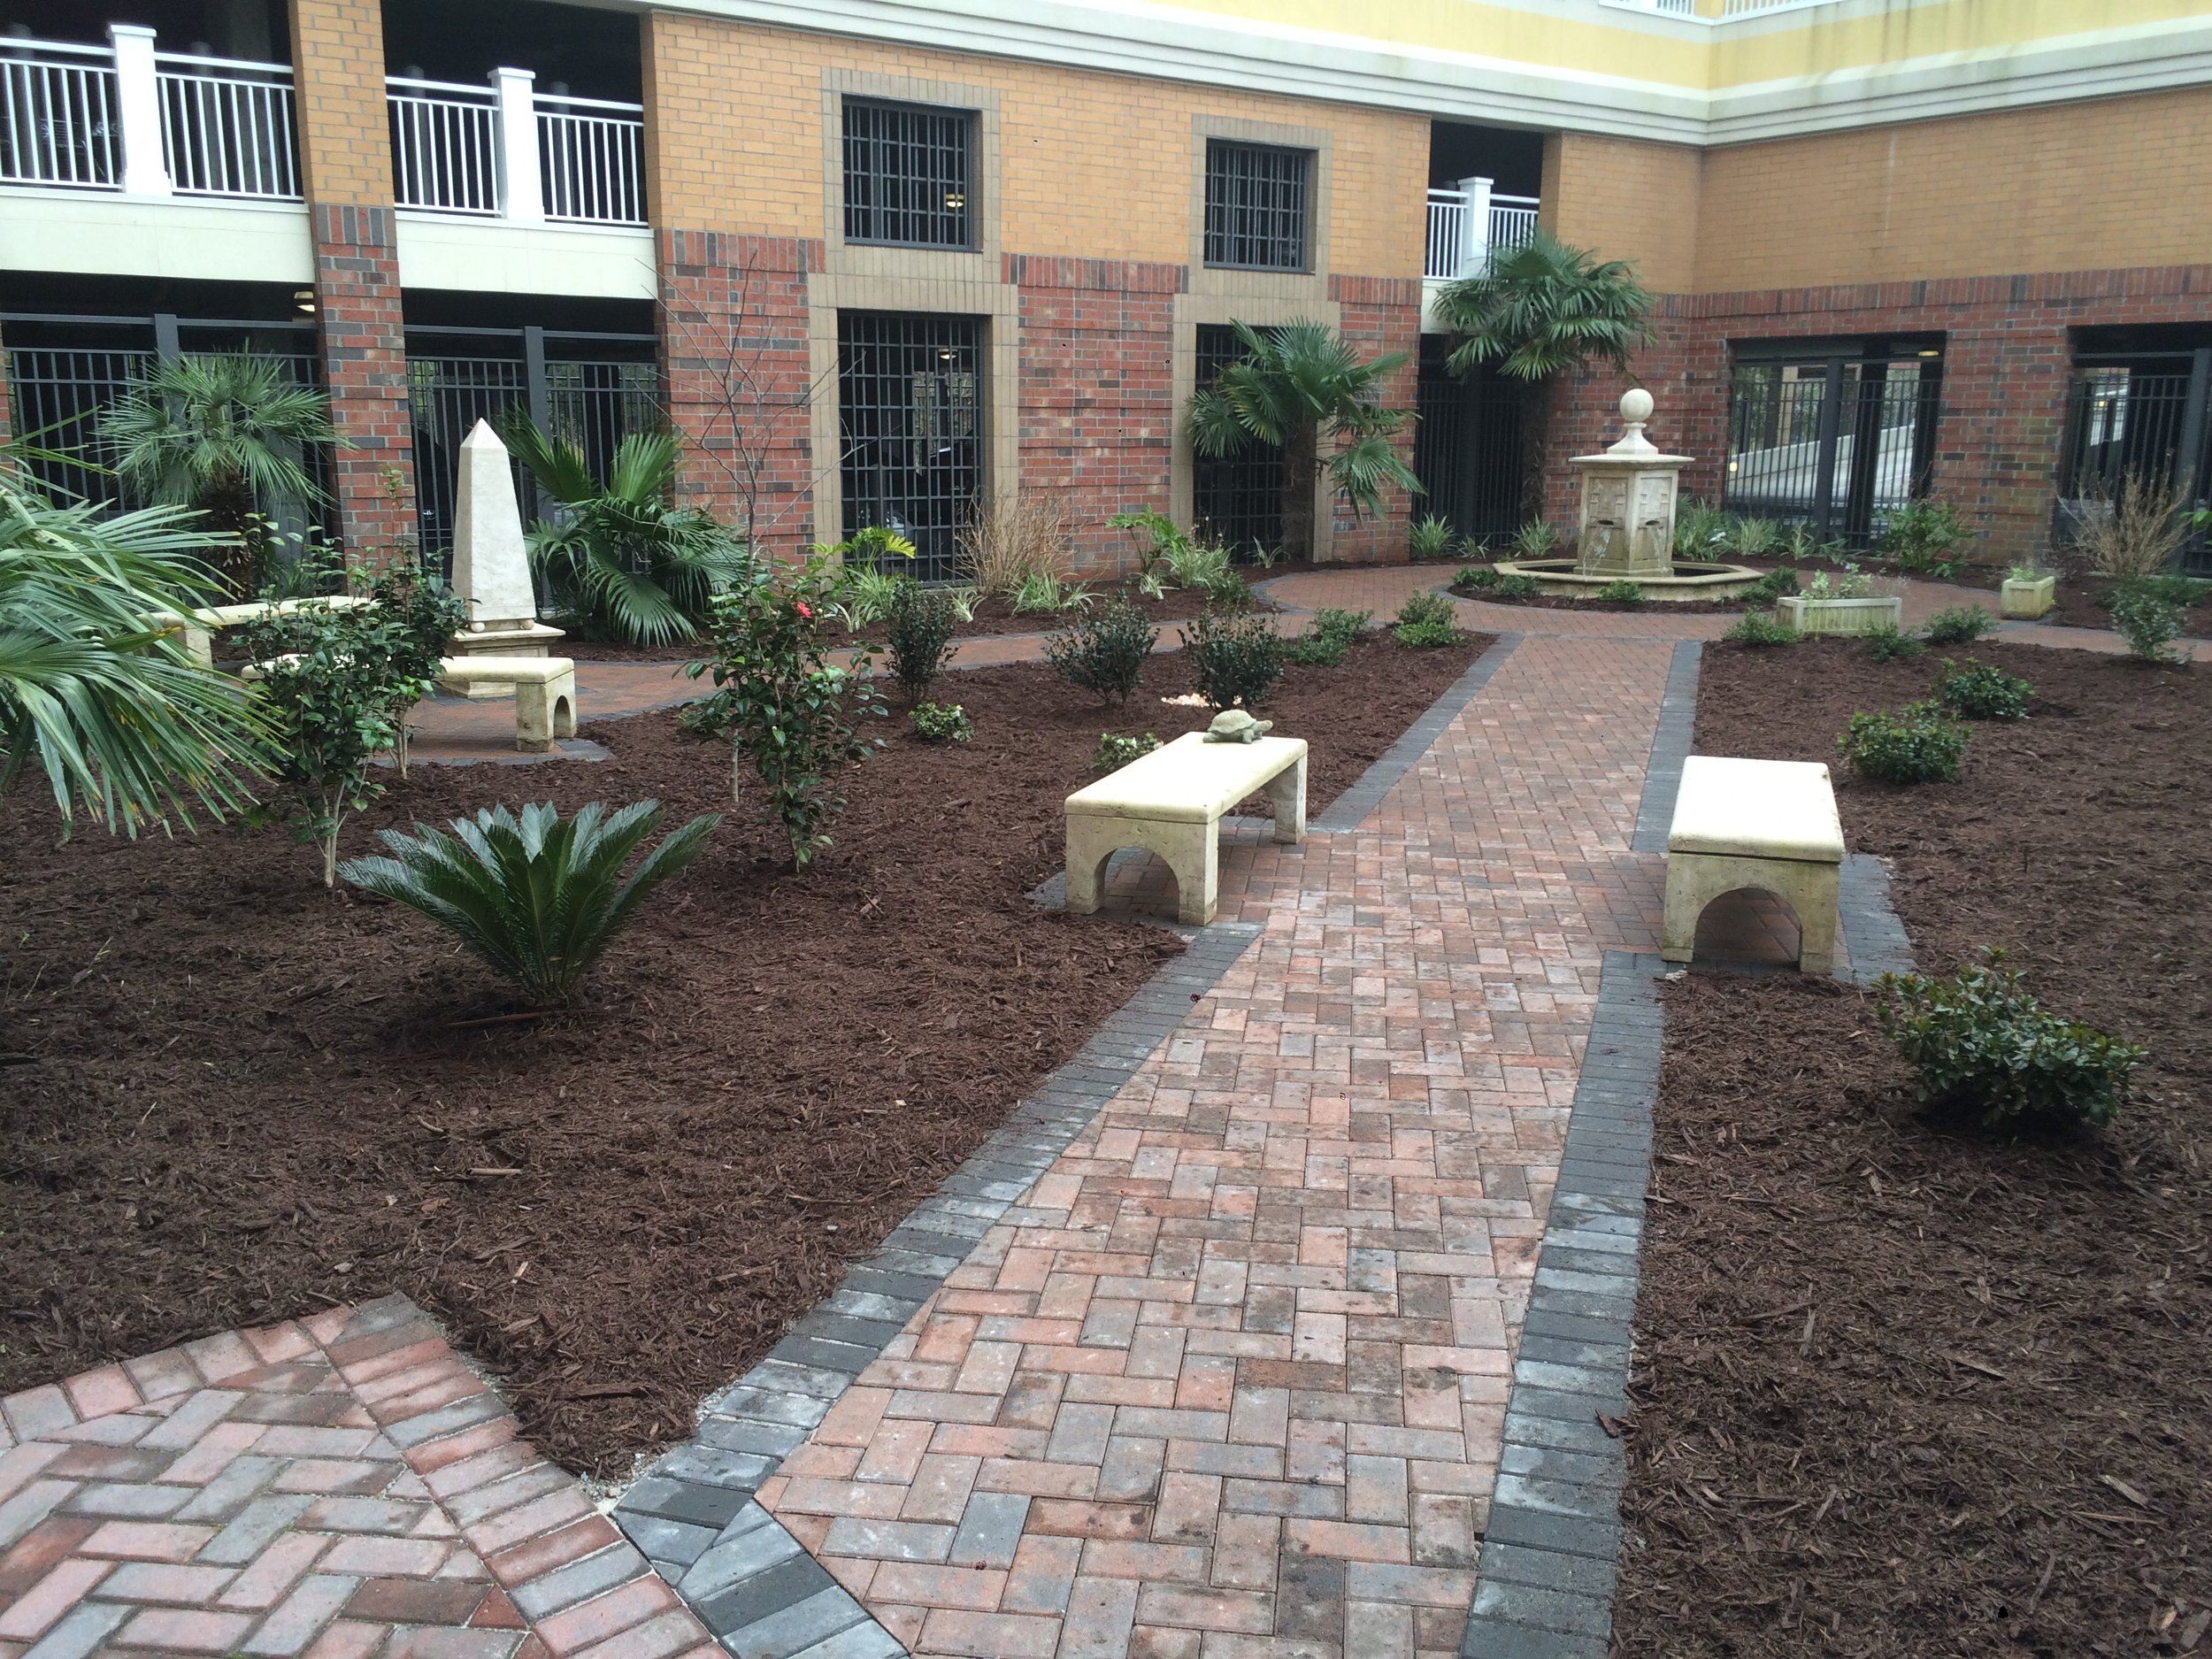 Hardscapes - Paver patios and sidewalksFire pits (wood and gas)Built-in grillsOutdoor kitchensSeating wallsRetaining wallsPlanters